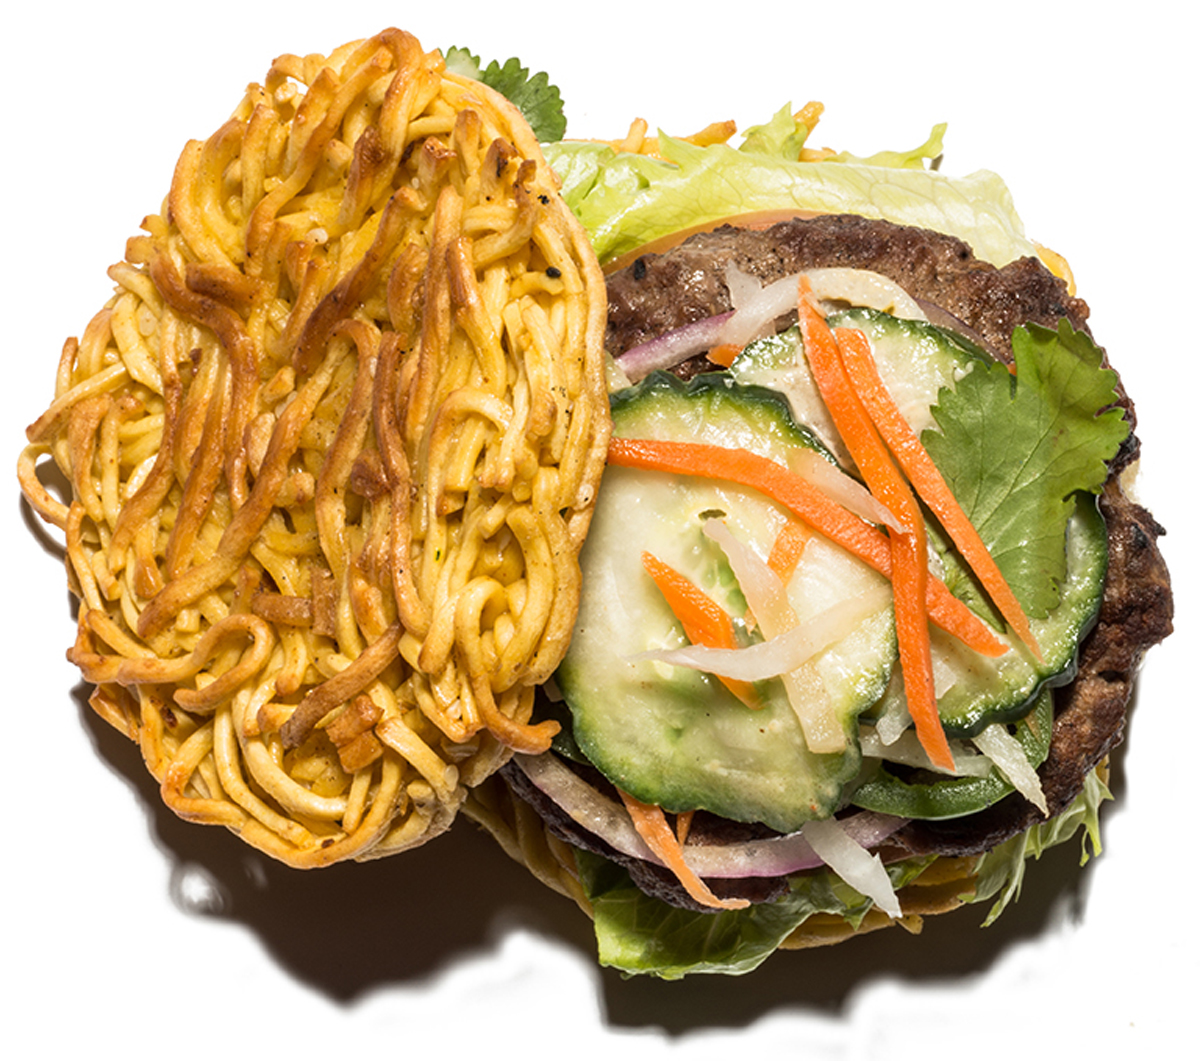 Ramen banh mi burger from Ki Bistro/All Photos by Toan Trinh